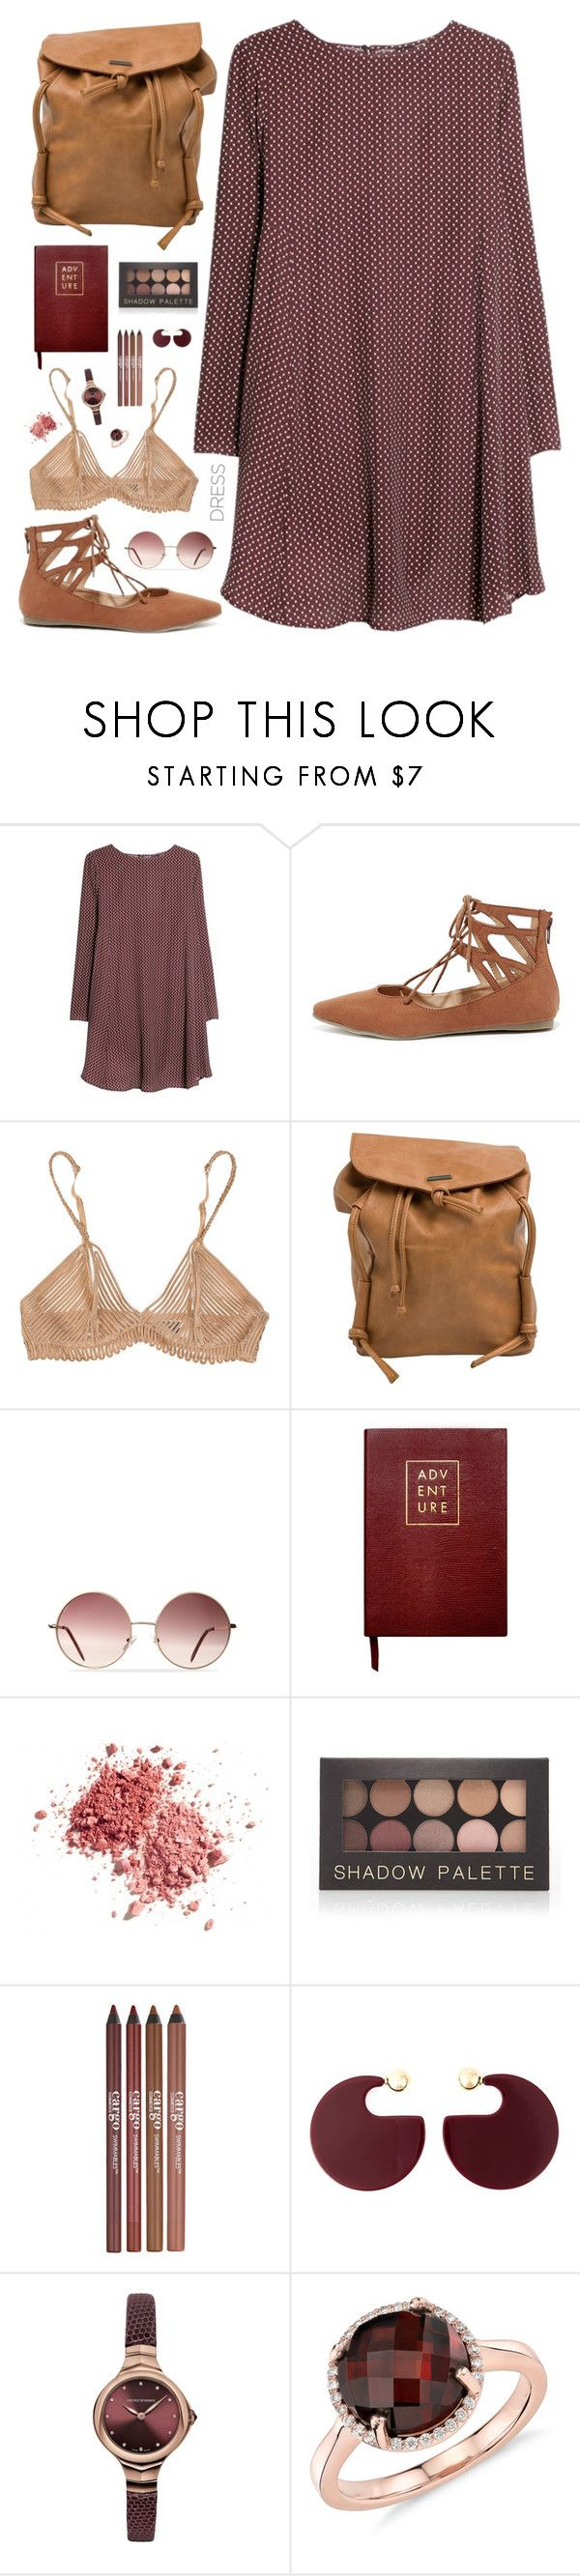 """Senza titolo #559"" by elly3 ❤ liked on Polyvore featuring MANGO, Liliana, La Perla, Roxy, Sloane Stationery, Forever 21, CARGO, Marni, Emporio Armani and Blue Nile"